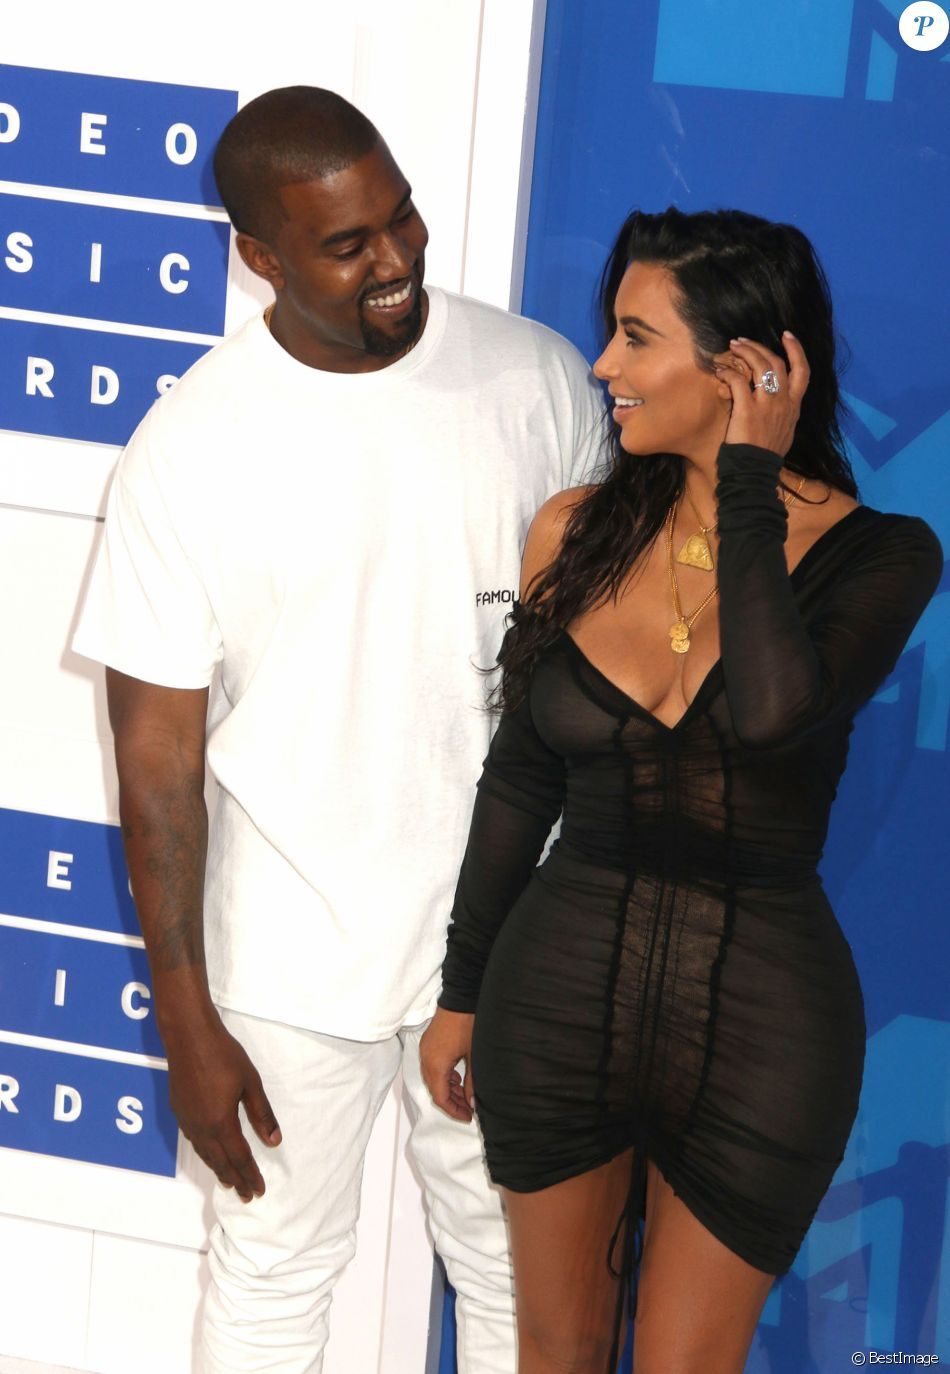 Kim Kardashian et son mari Kanye West lors des MTV Video Music Awards 2016 au Madison Square Garden à New York. Le 28 août 2016 © Nancy Kaszerman / Zuma Press / Bestimage